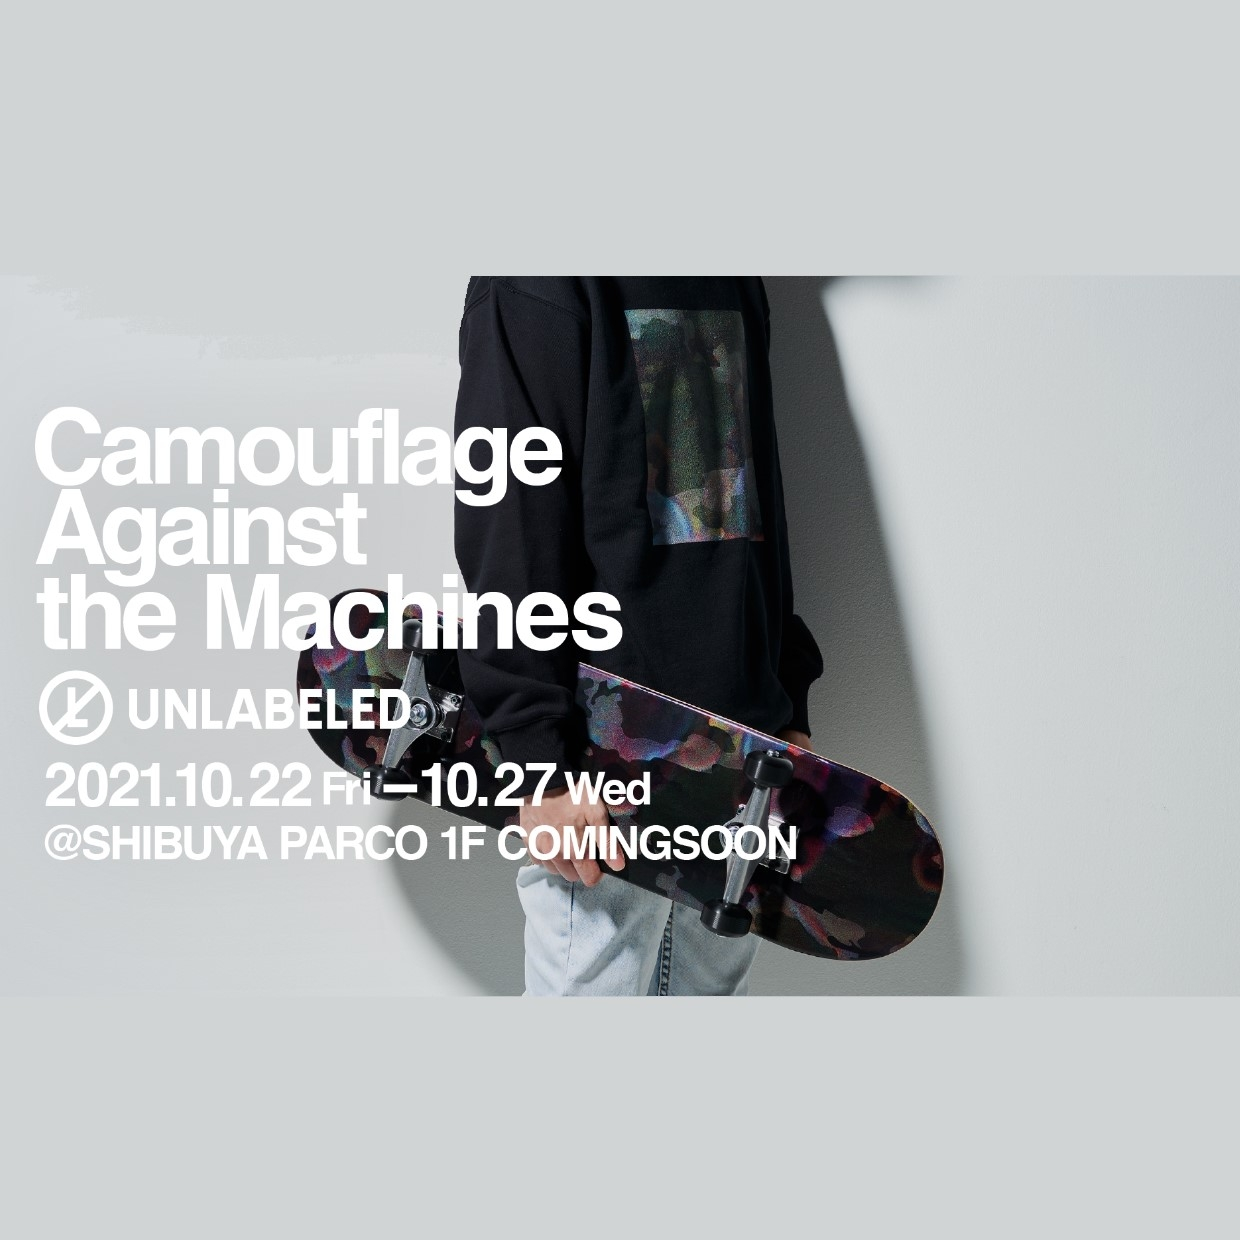 Camouflage Against the Machines